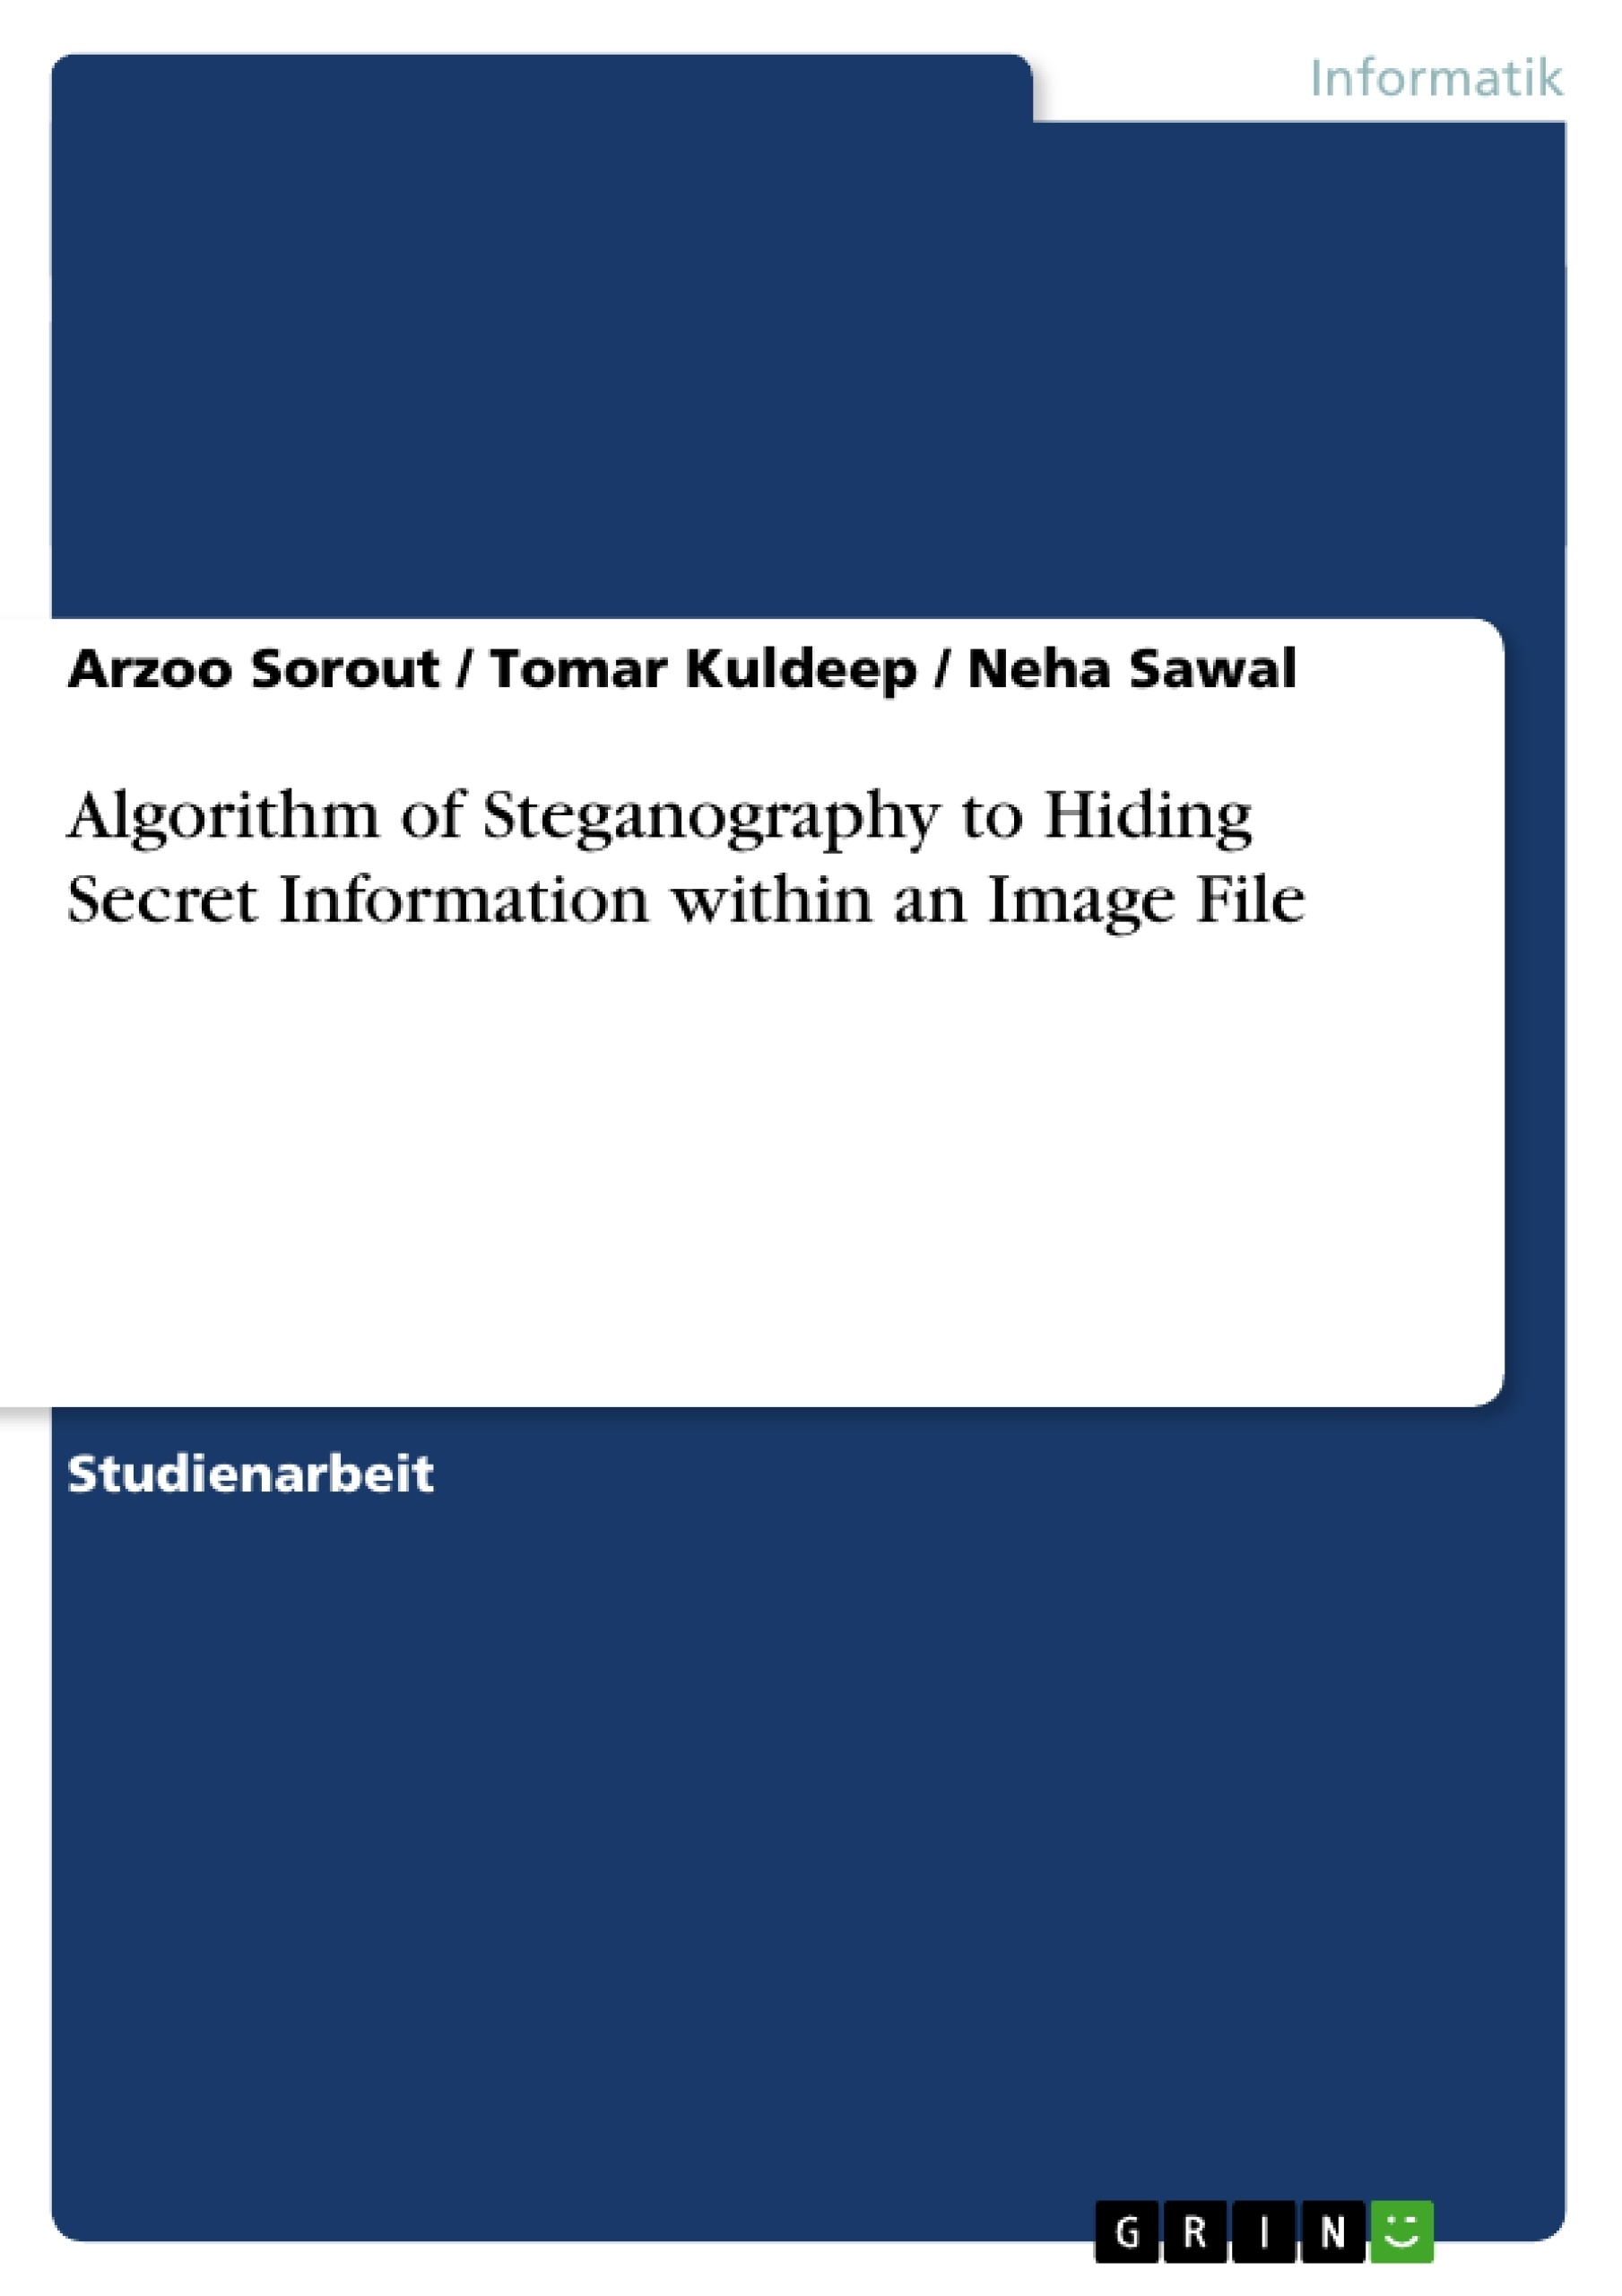 Titel: Algorithm of Steganography to Hiding Secret Information within an Image File